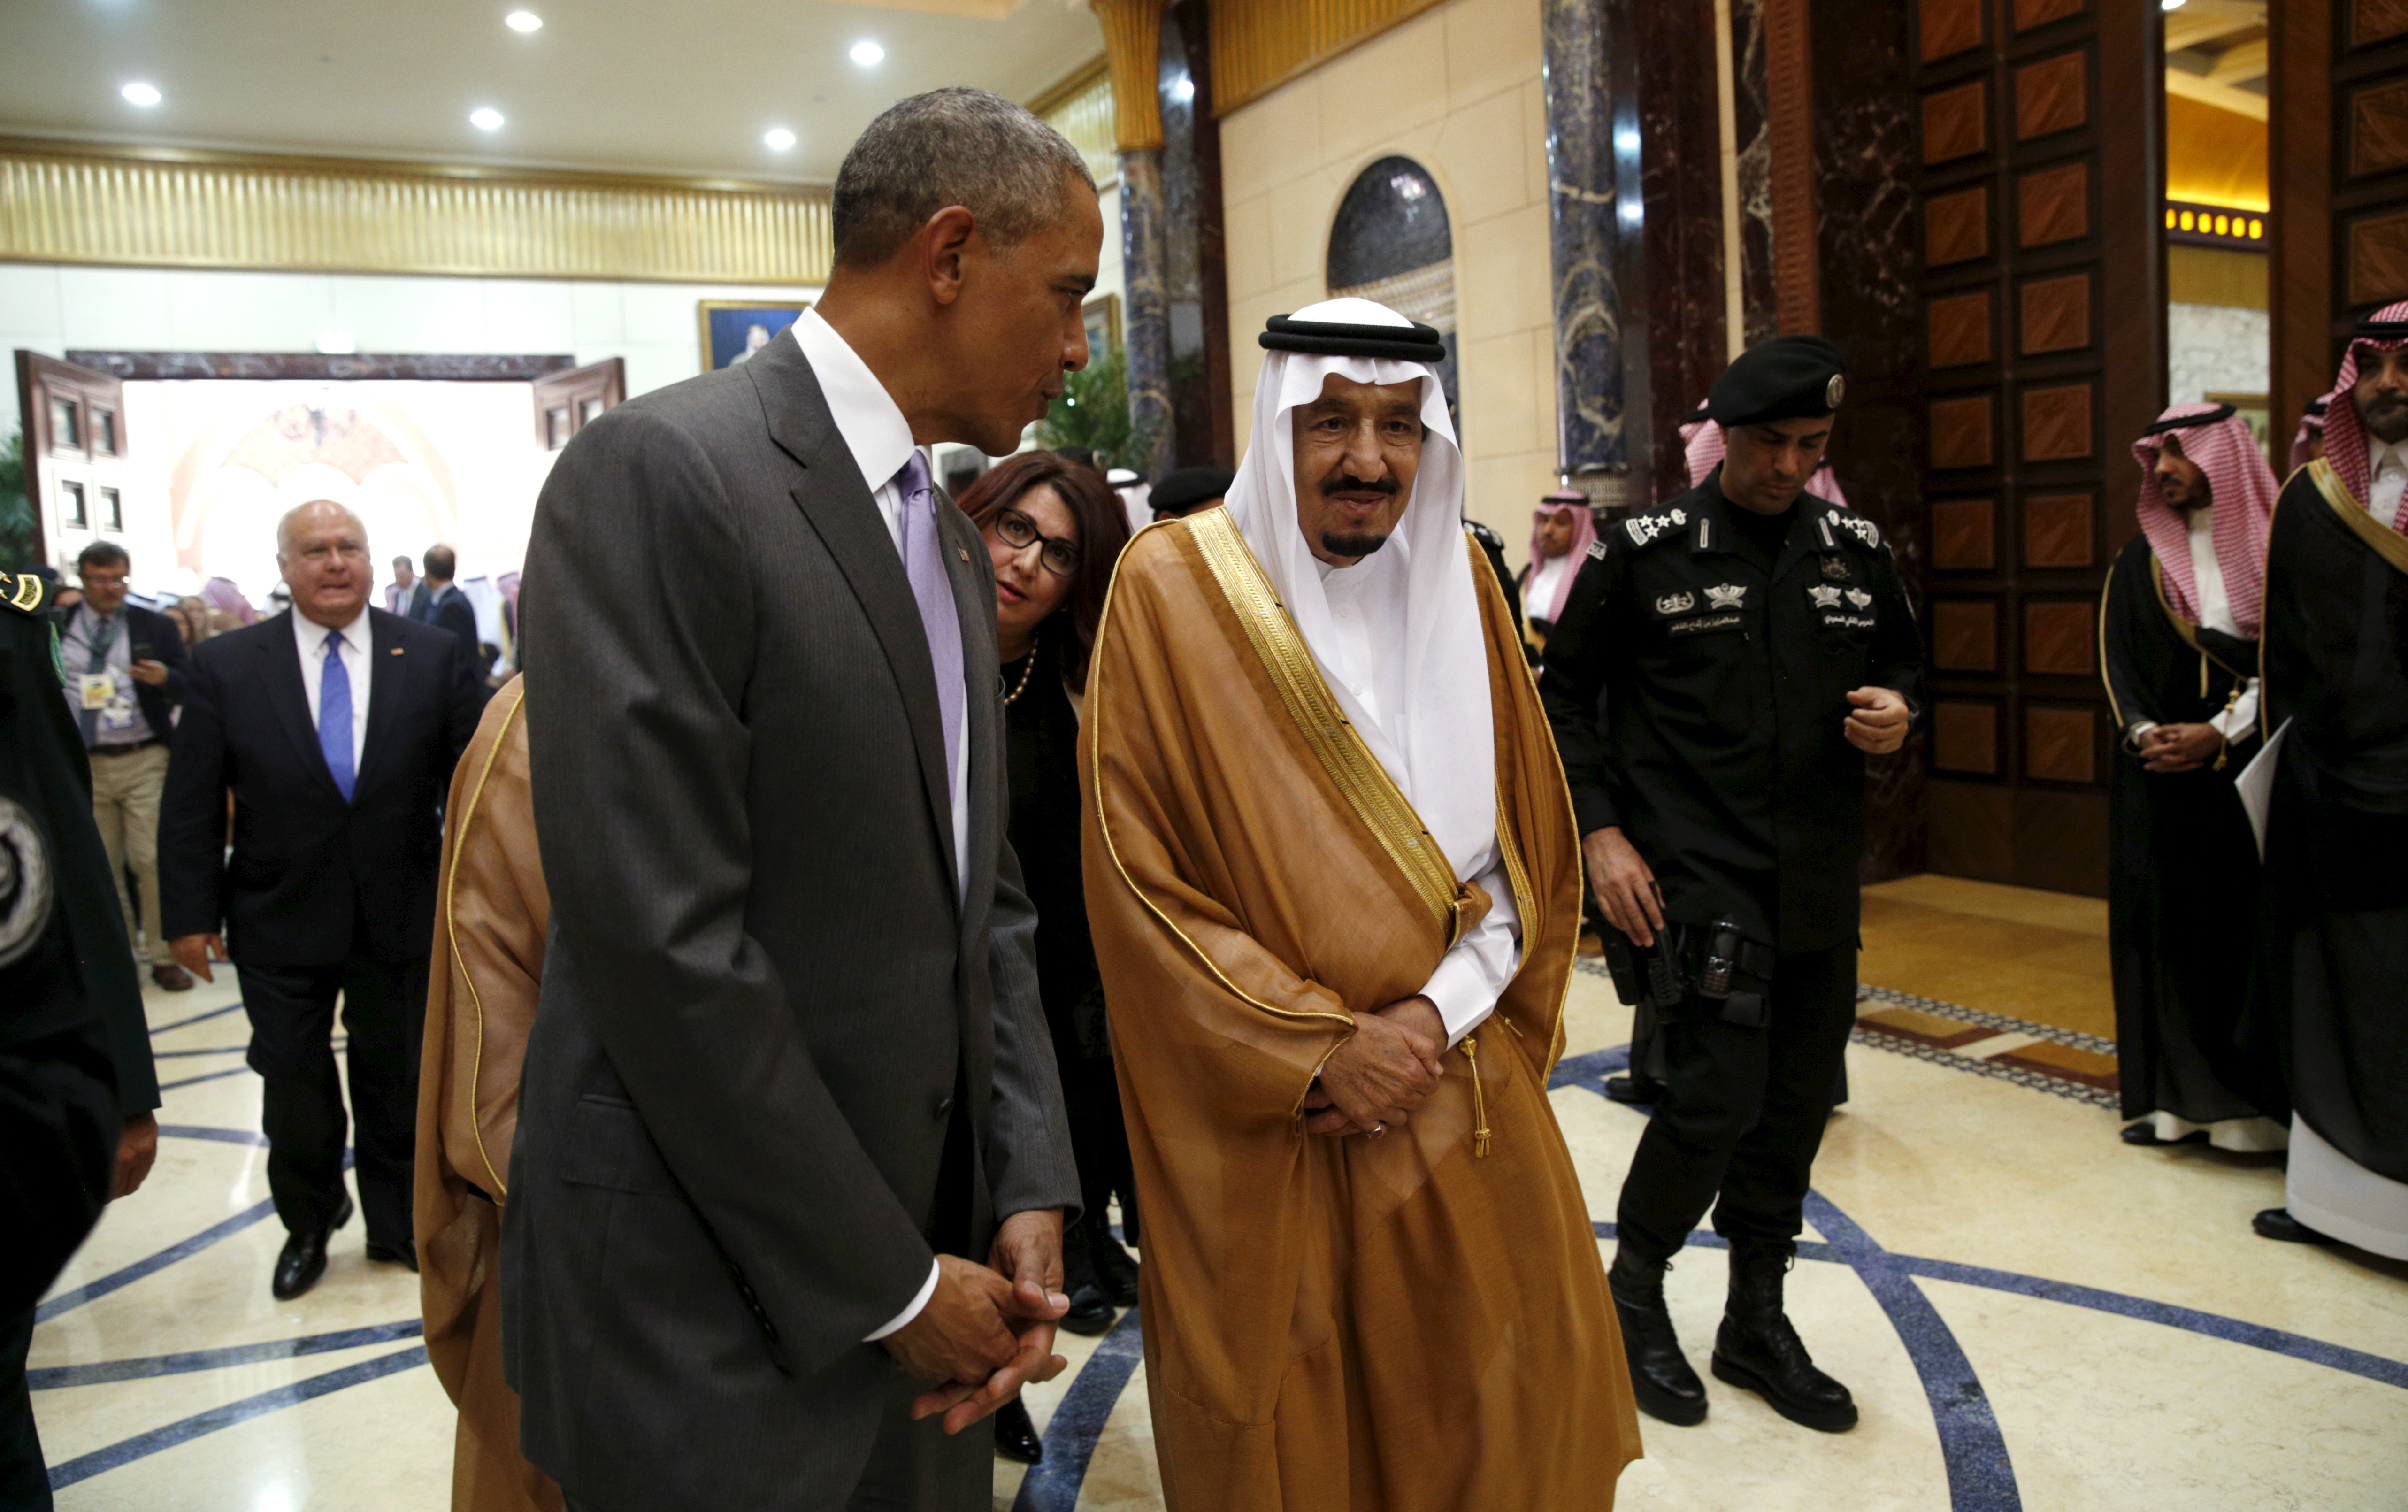 U.S. President Barack Obama walks with Saudi King Salman at Erga Palace upon his arrival for a summit meeting in Riyadh, Saudi Arabia April 20, 2016. REUTERS/Kevin Lamarque